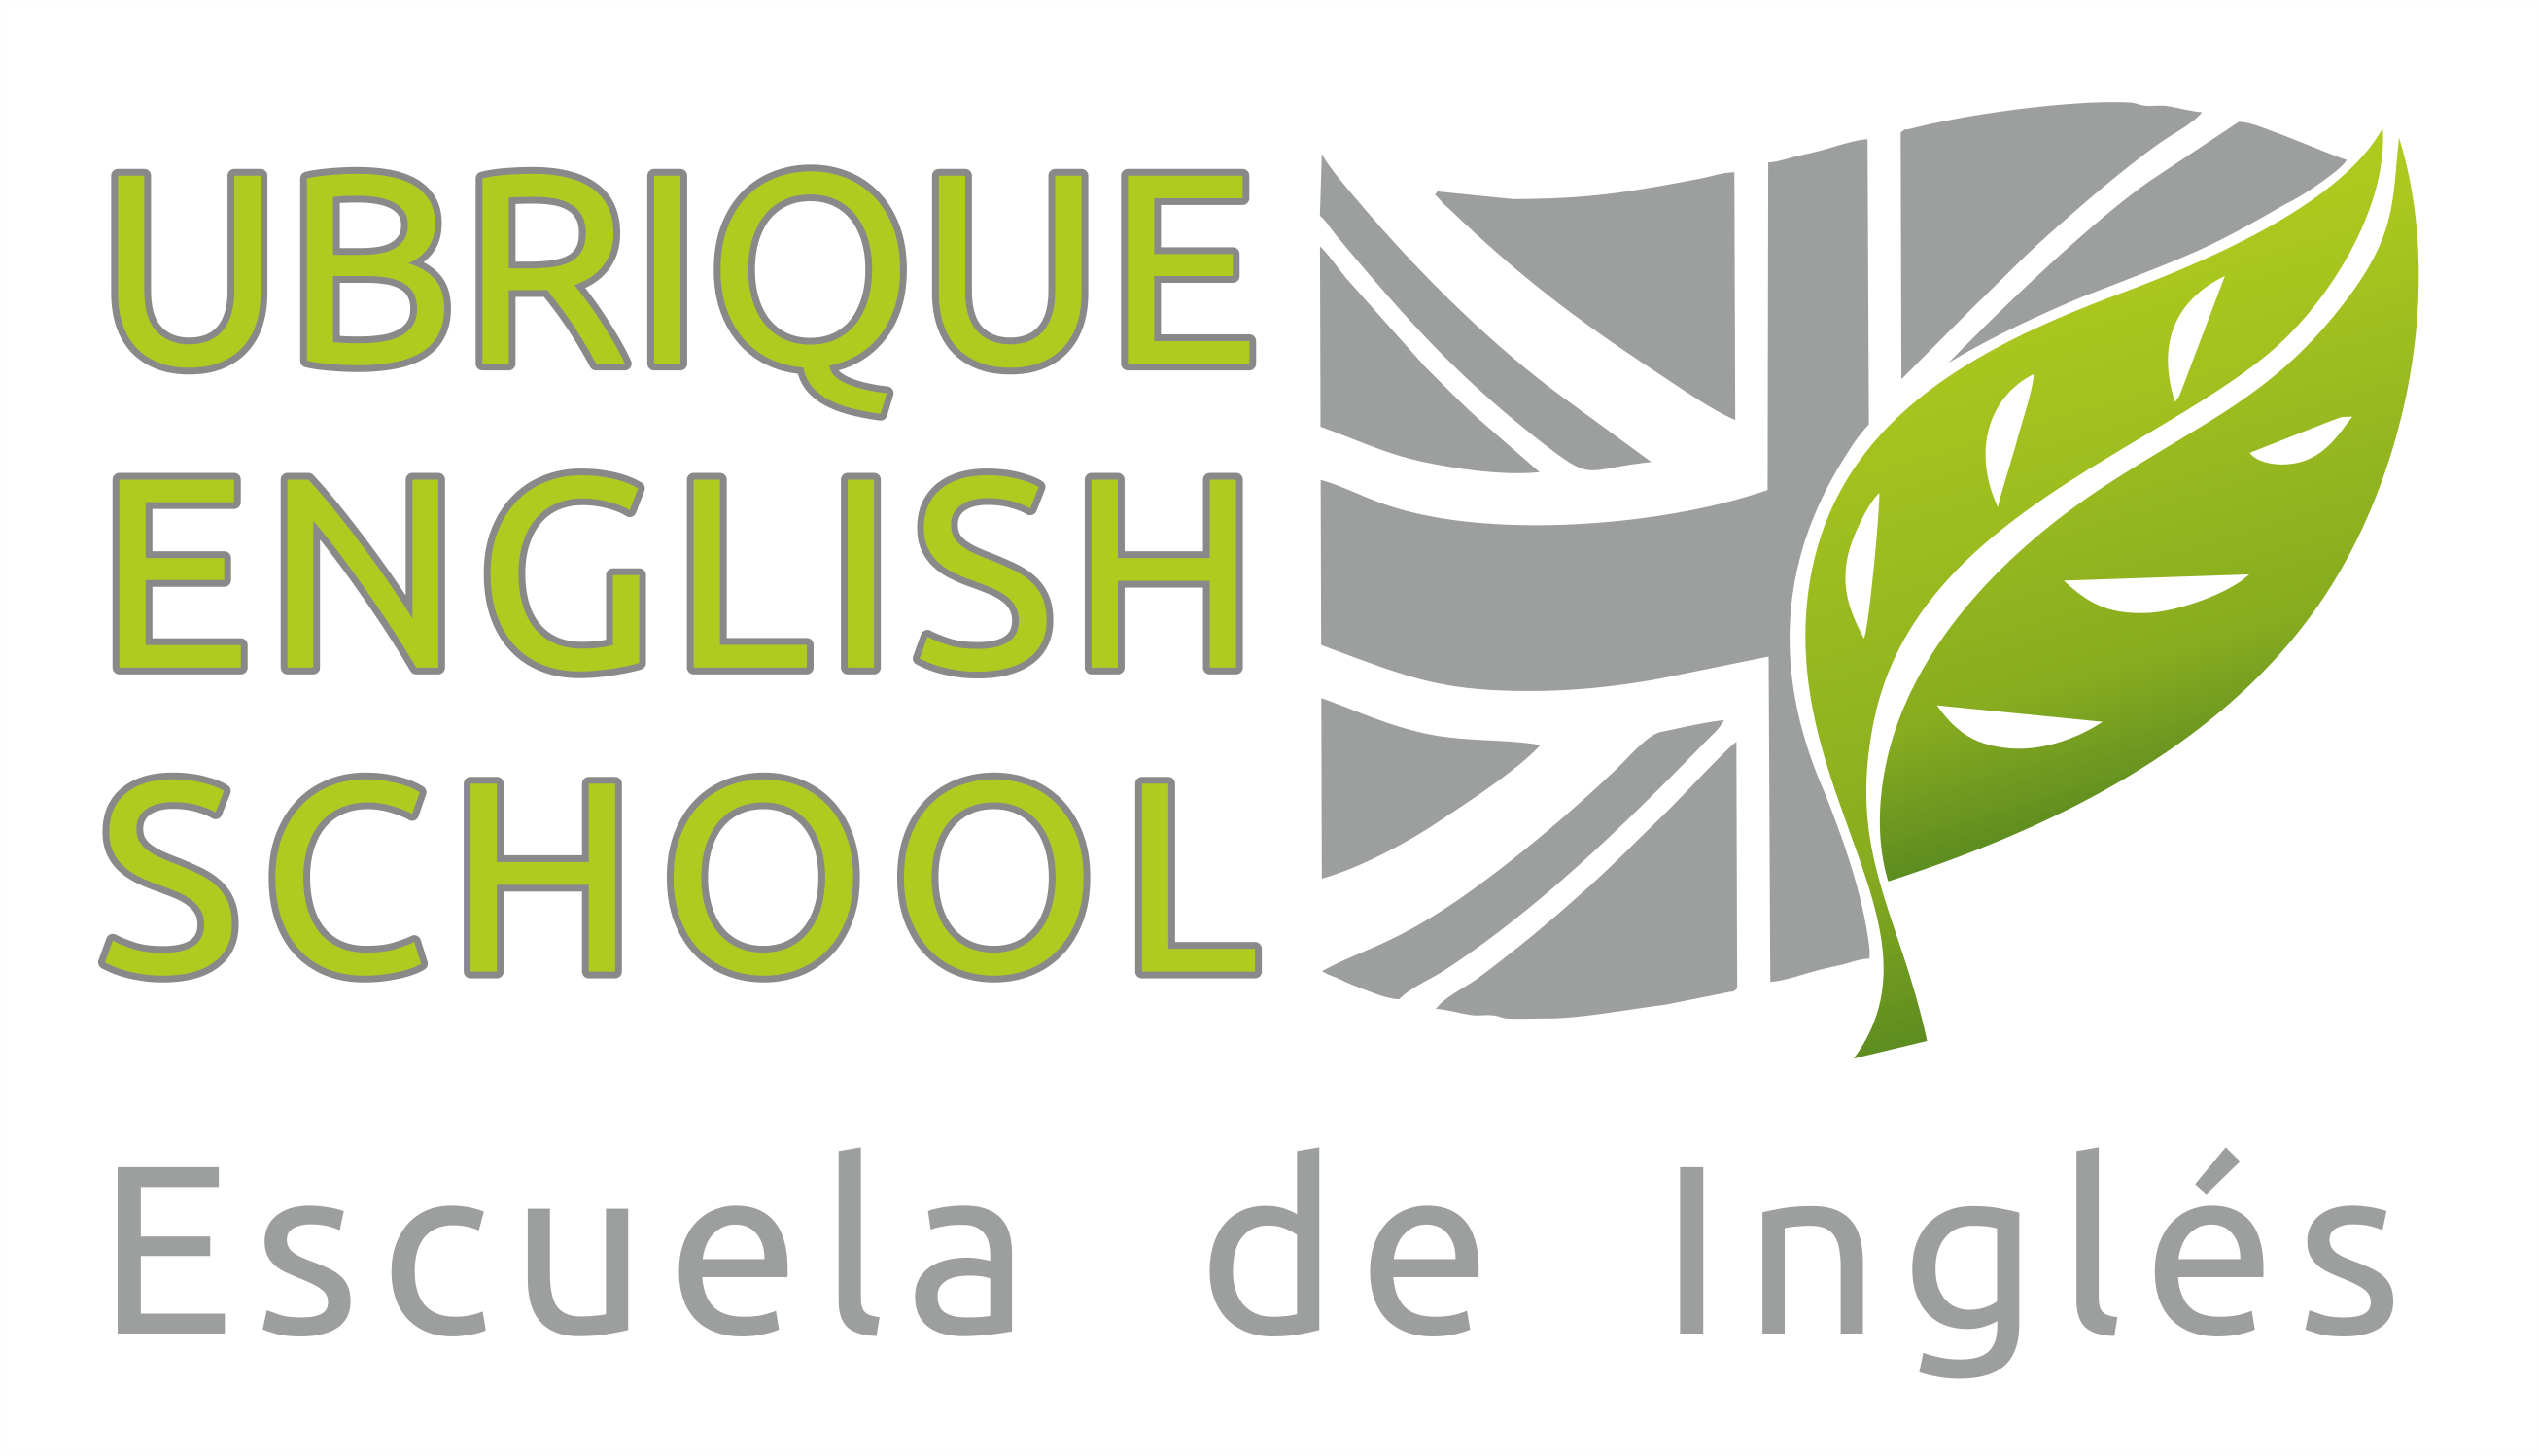 Ubrique English School